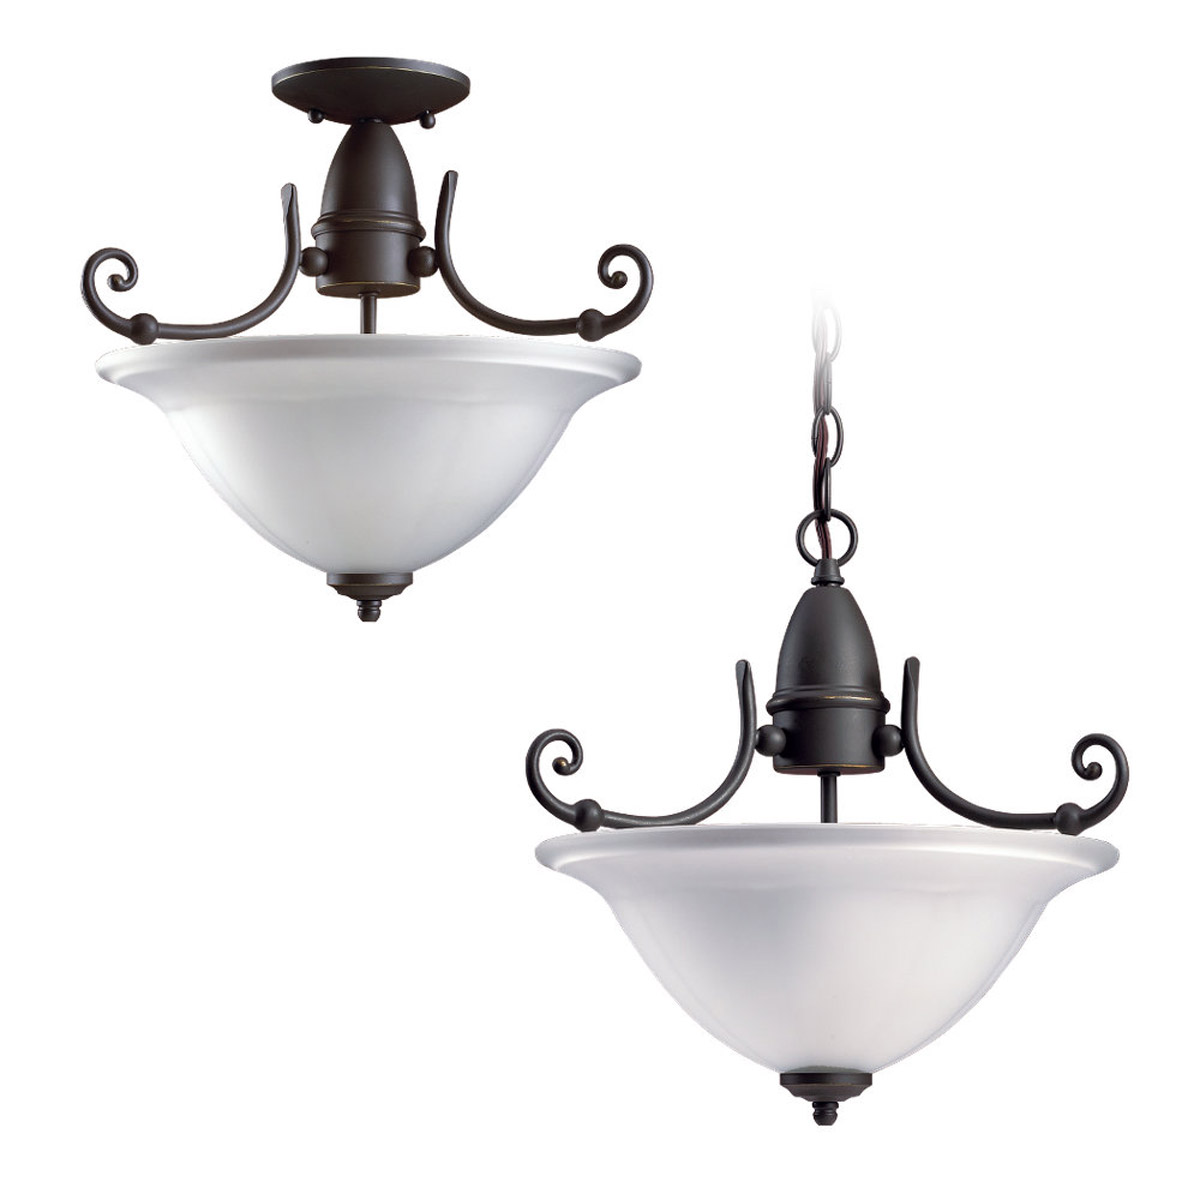 Sea Gull Lighting Canterbury 2 Light Pendant Convertible in Antique Bronze 51050-71